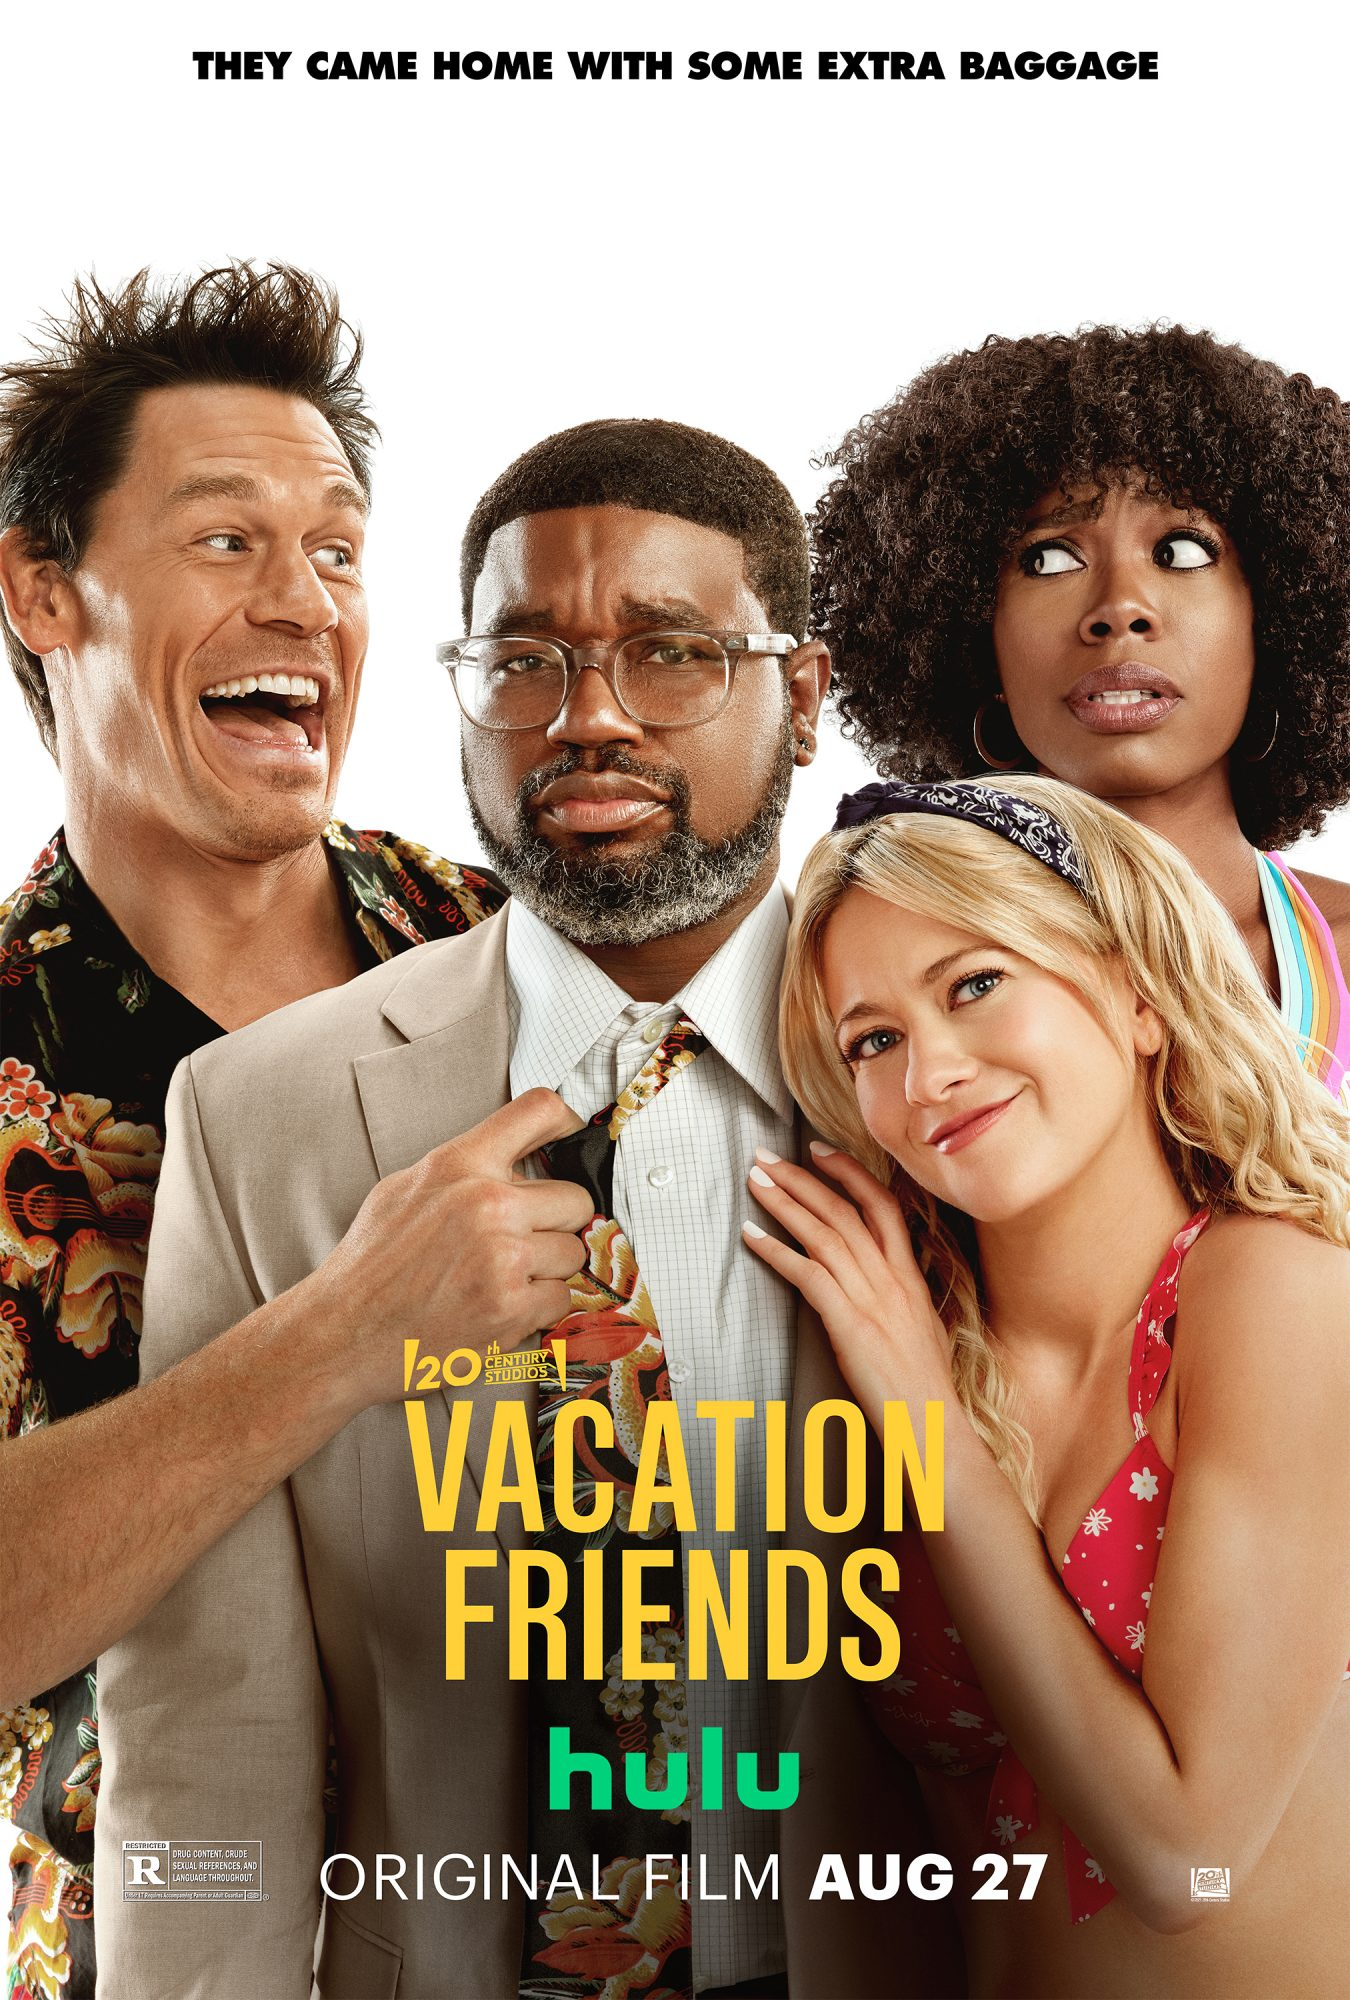 John Cena and Lil Rel Howery Star in the Comedy Vacation Friends